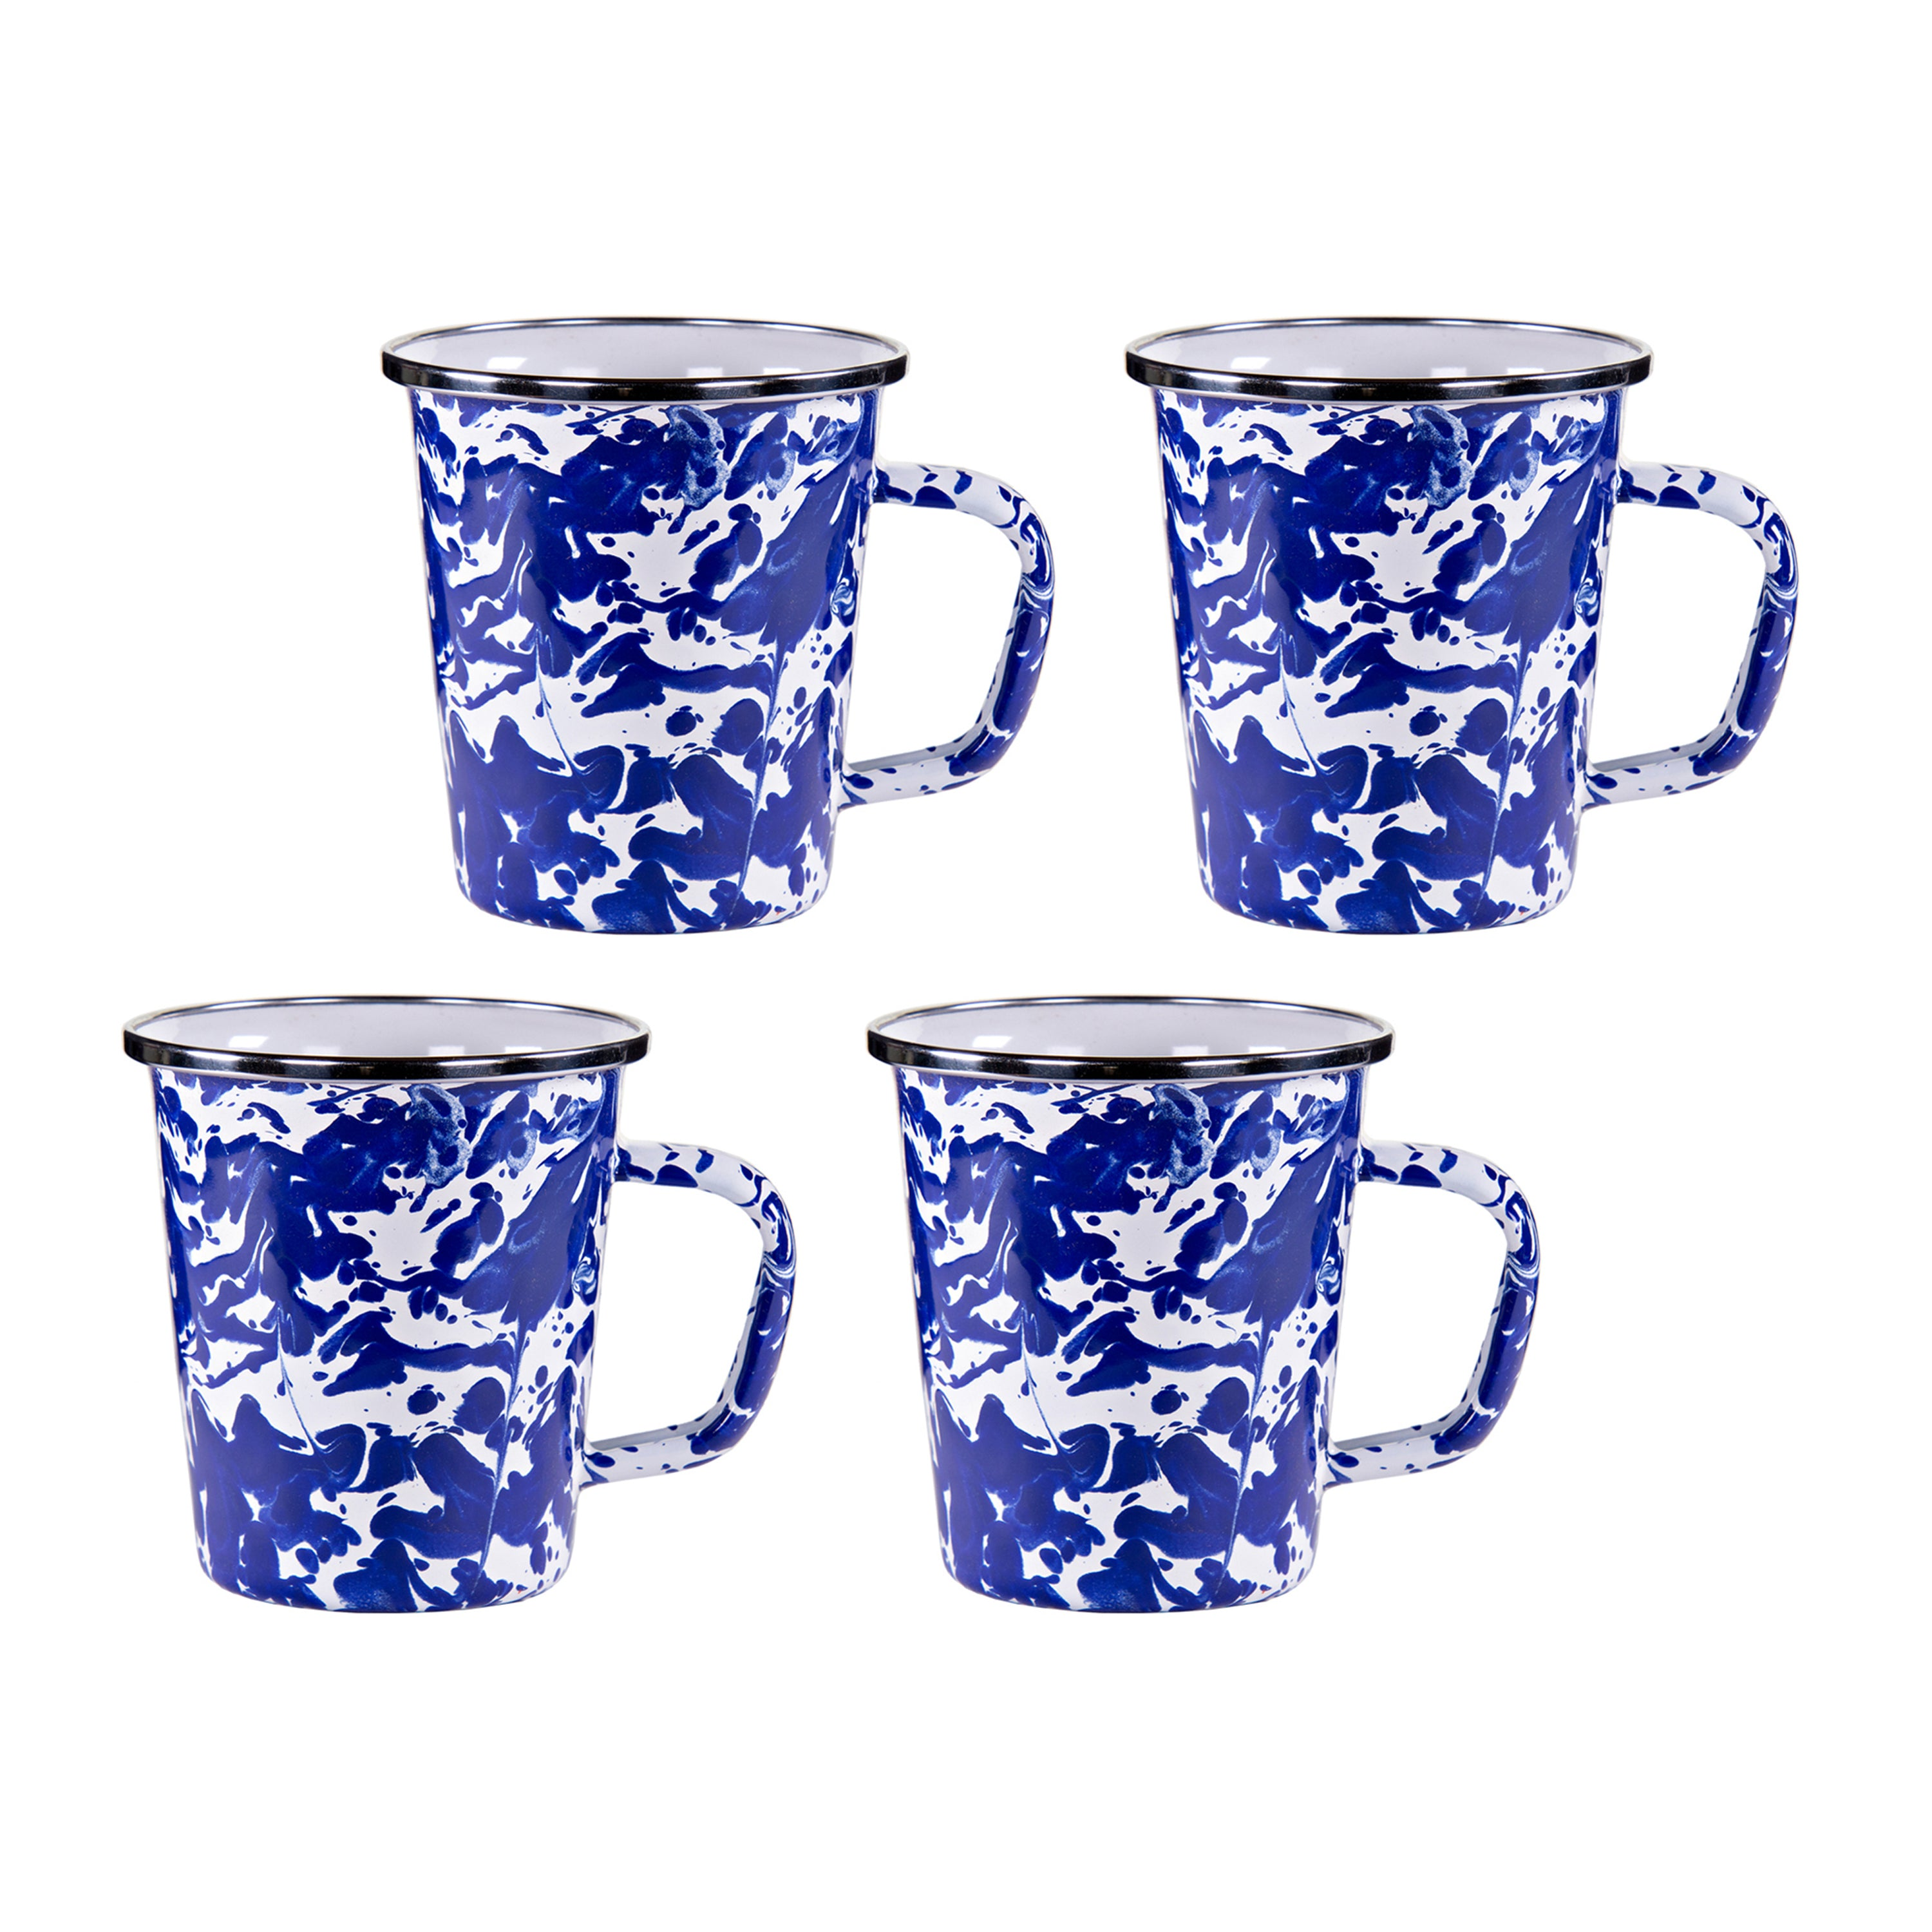 CB66S4 - Set of 4 Cobalt Swirl Latte Mugs Image 1